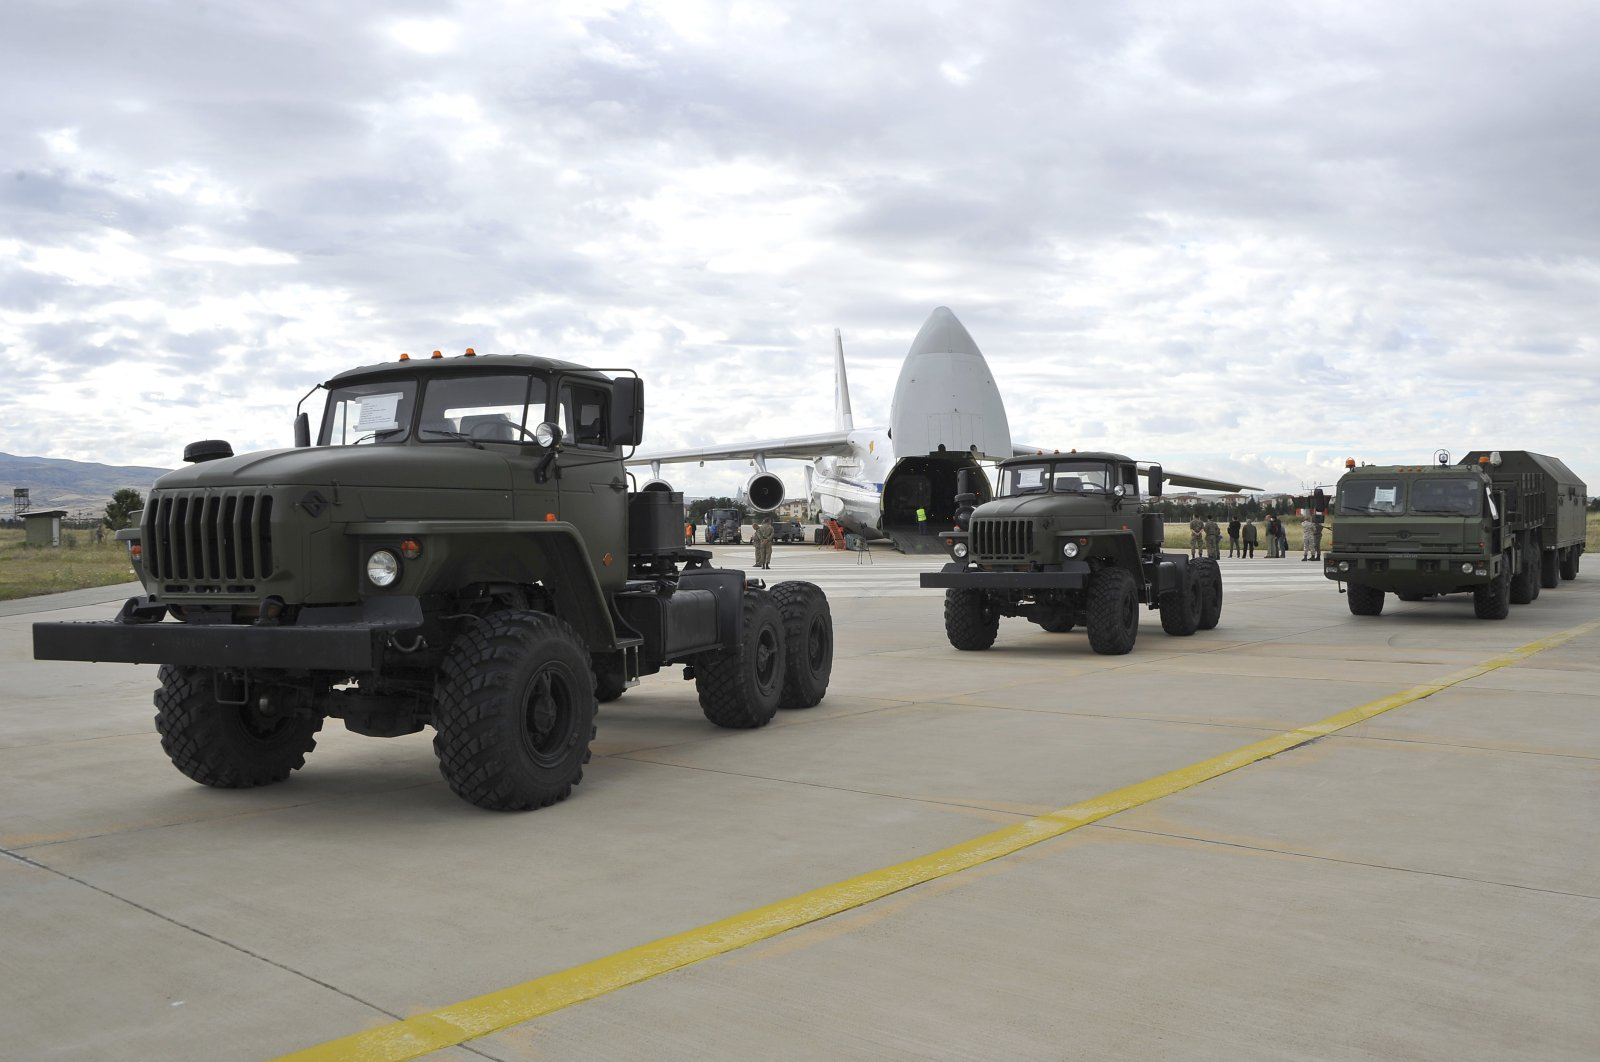 Military vehicles and equipment, parts of the S-400 air defense systems, are seen on the tarmac, after they were unloaded from a Russian transport aircraft, at Murted military airport in Ankara, Turkey, Friday, July 12, 2019. (Turkish Defense Ministry via AP, Pool)